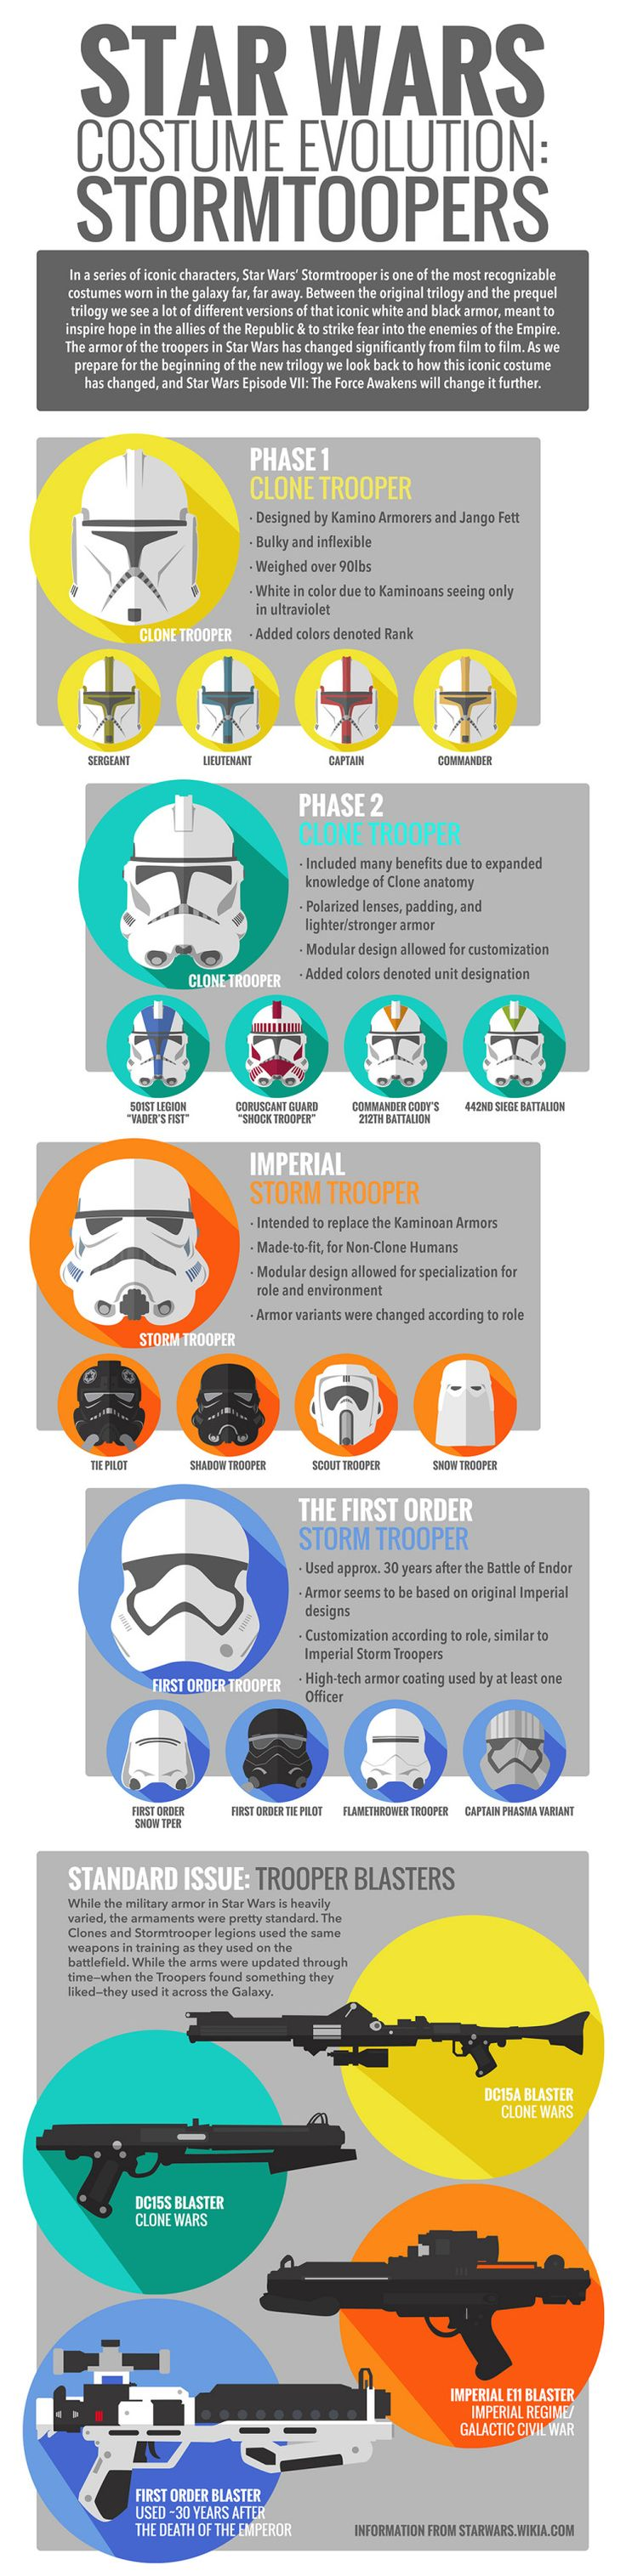 Long gone are the days when a Stormtrooper costume was a straightforward request.These days, you have to determine whether little Hunter wants to be Phase 2 Clone Trooper, a First Order Storm Trooper, or something else entirely.Thankfully, HalloweenCostumes.com has come to the rescue with this guide showing the evolution of the Star Wars Stormtrooper (though we'd still double-check with the kiddos before making any final decisions).Via HalloweenCostumes.com.Star Wars infographics.